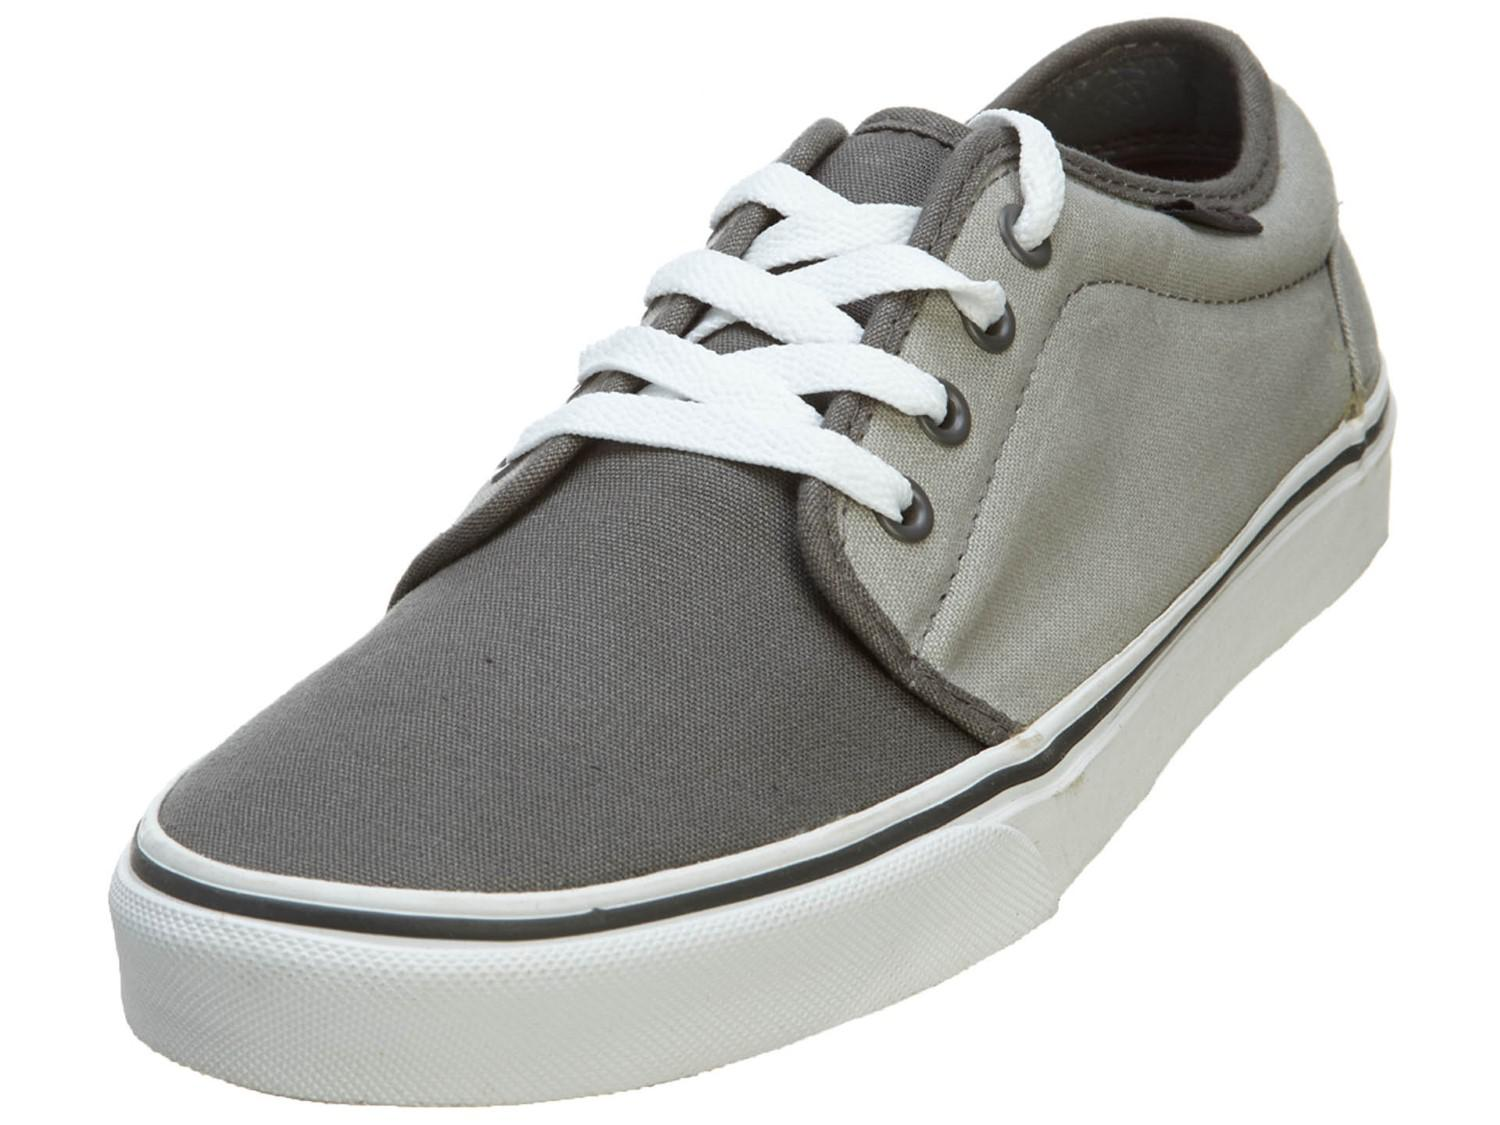 6e92144eda Lyst - Vans U 106 Vulcanized Sneakers in Gray for Men